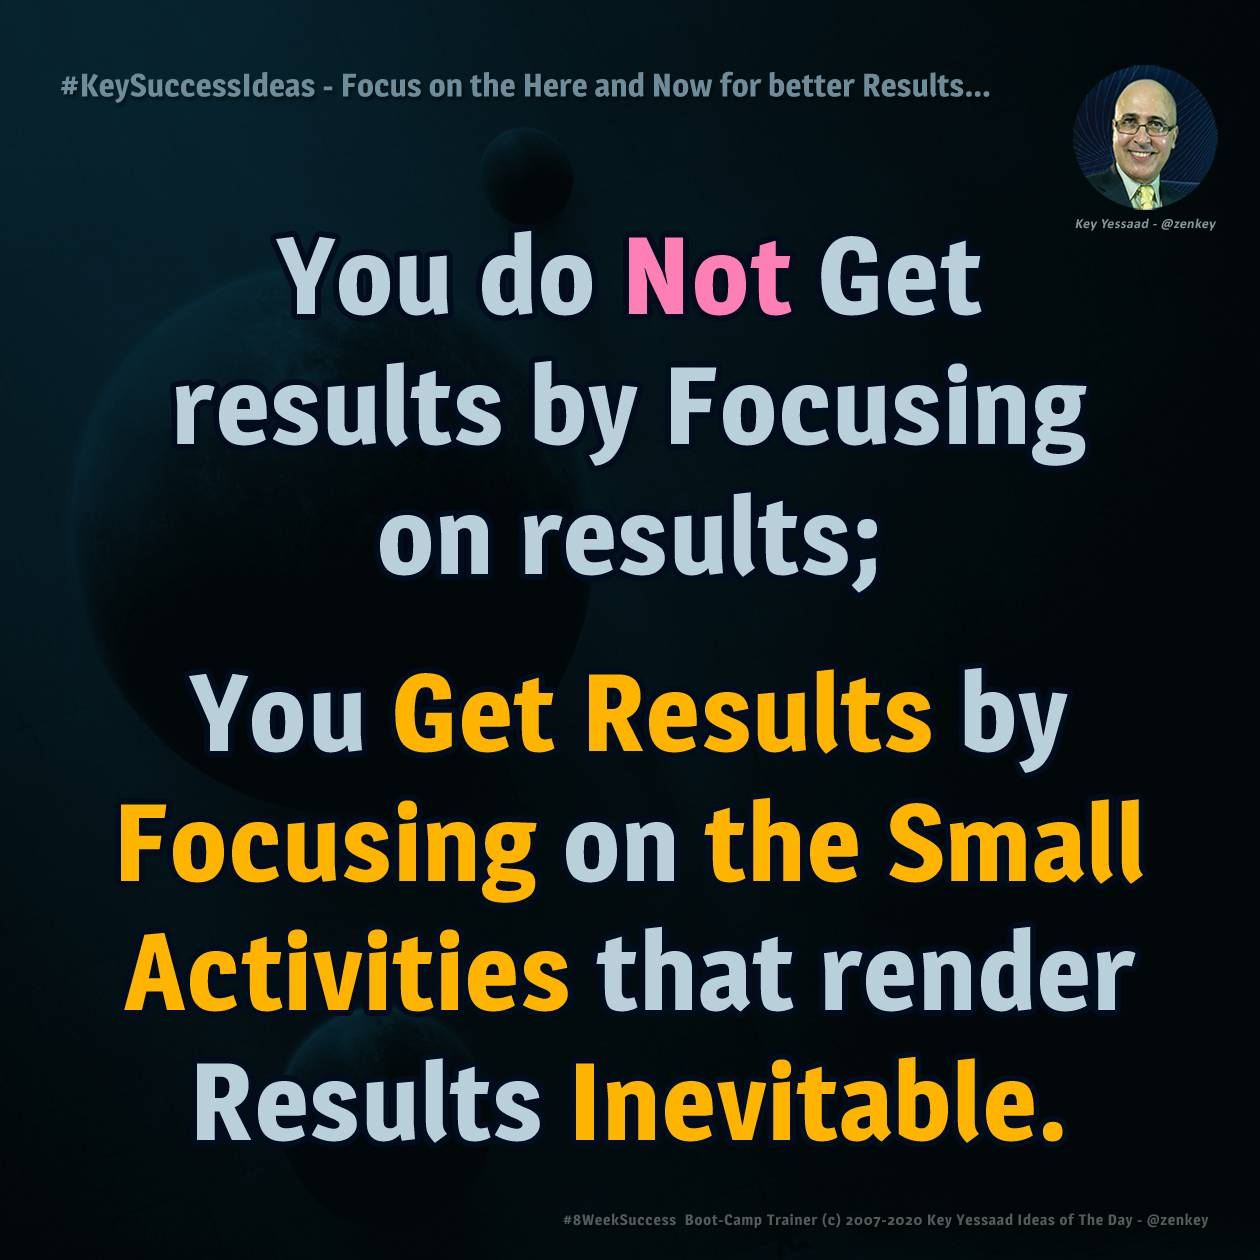 Focus on the Here and Now for better Results... - #KeySuccessIdeas